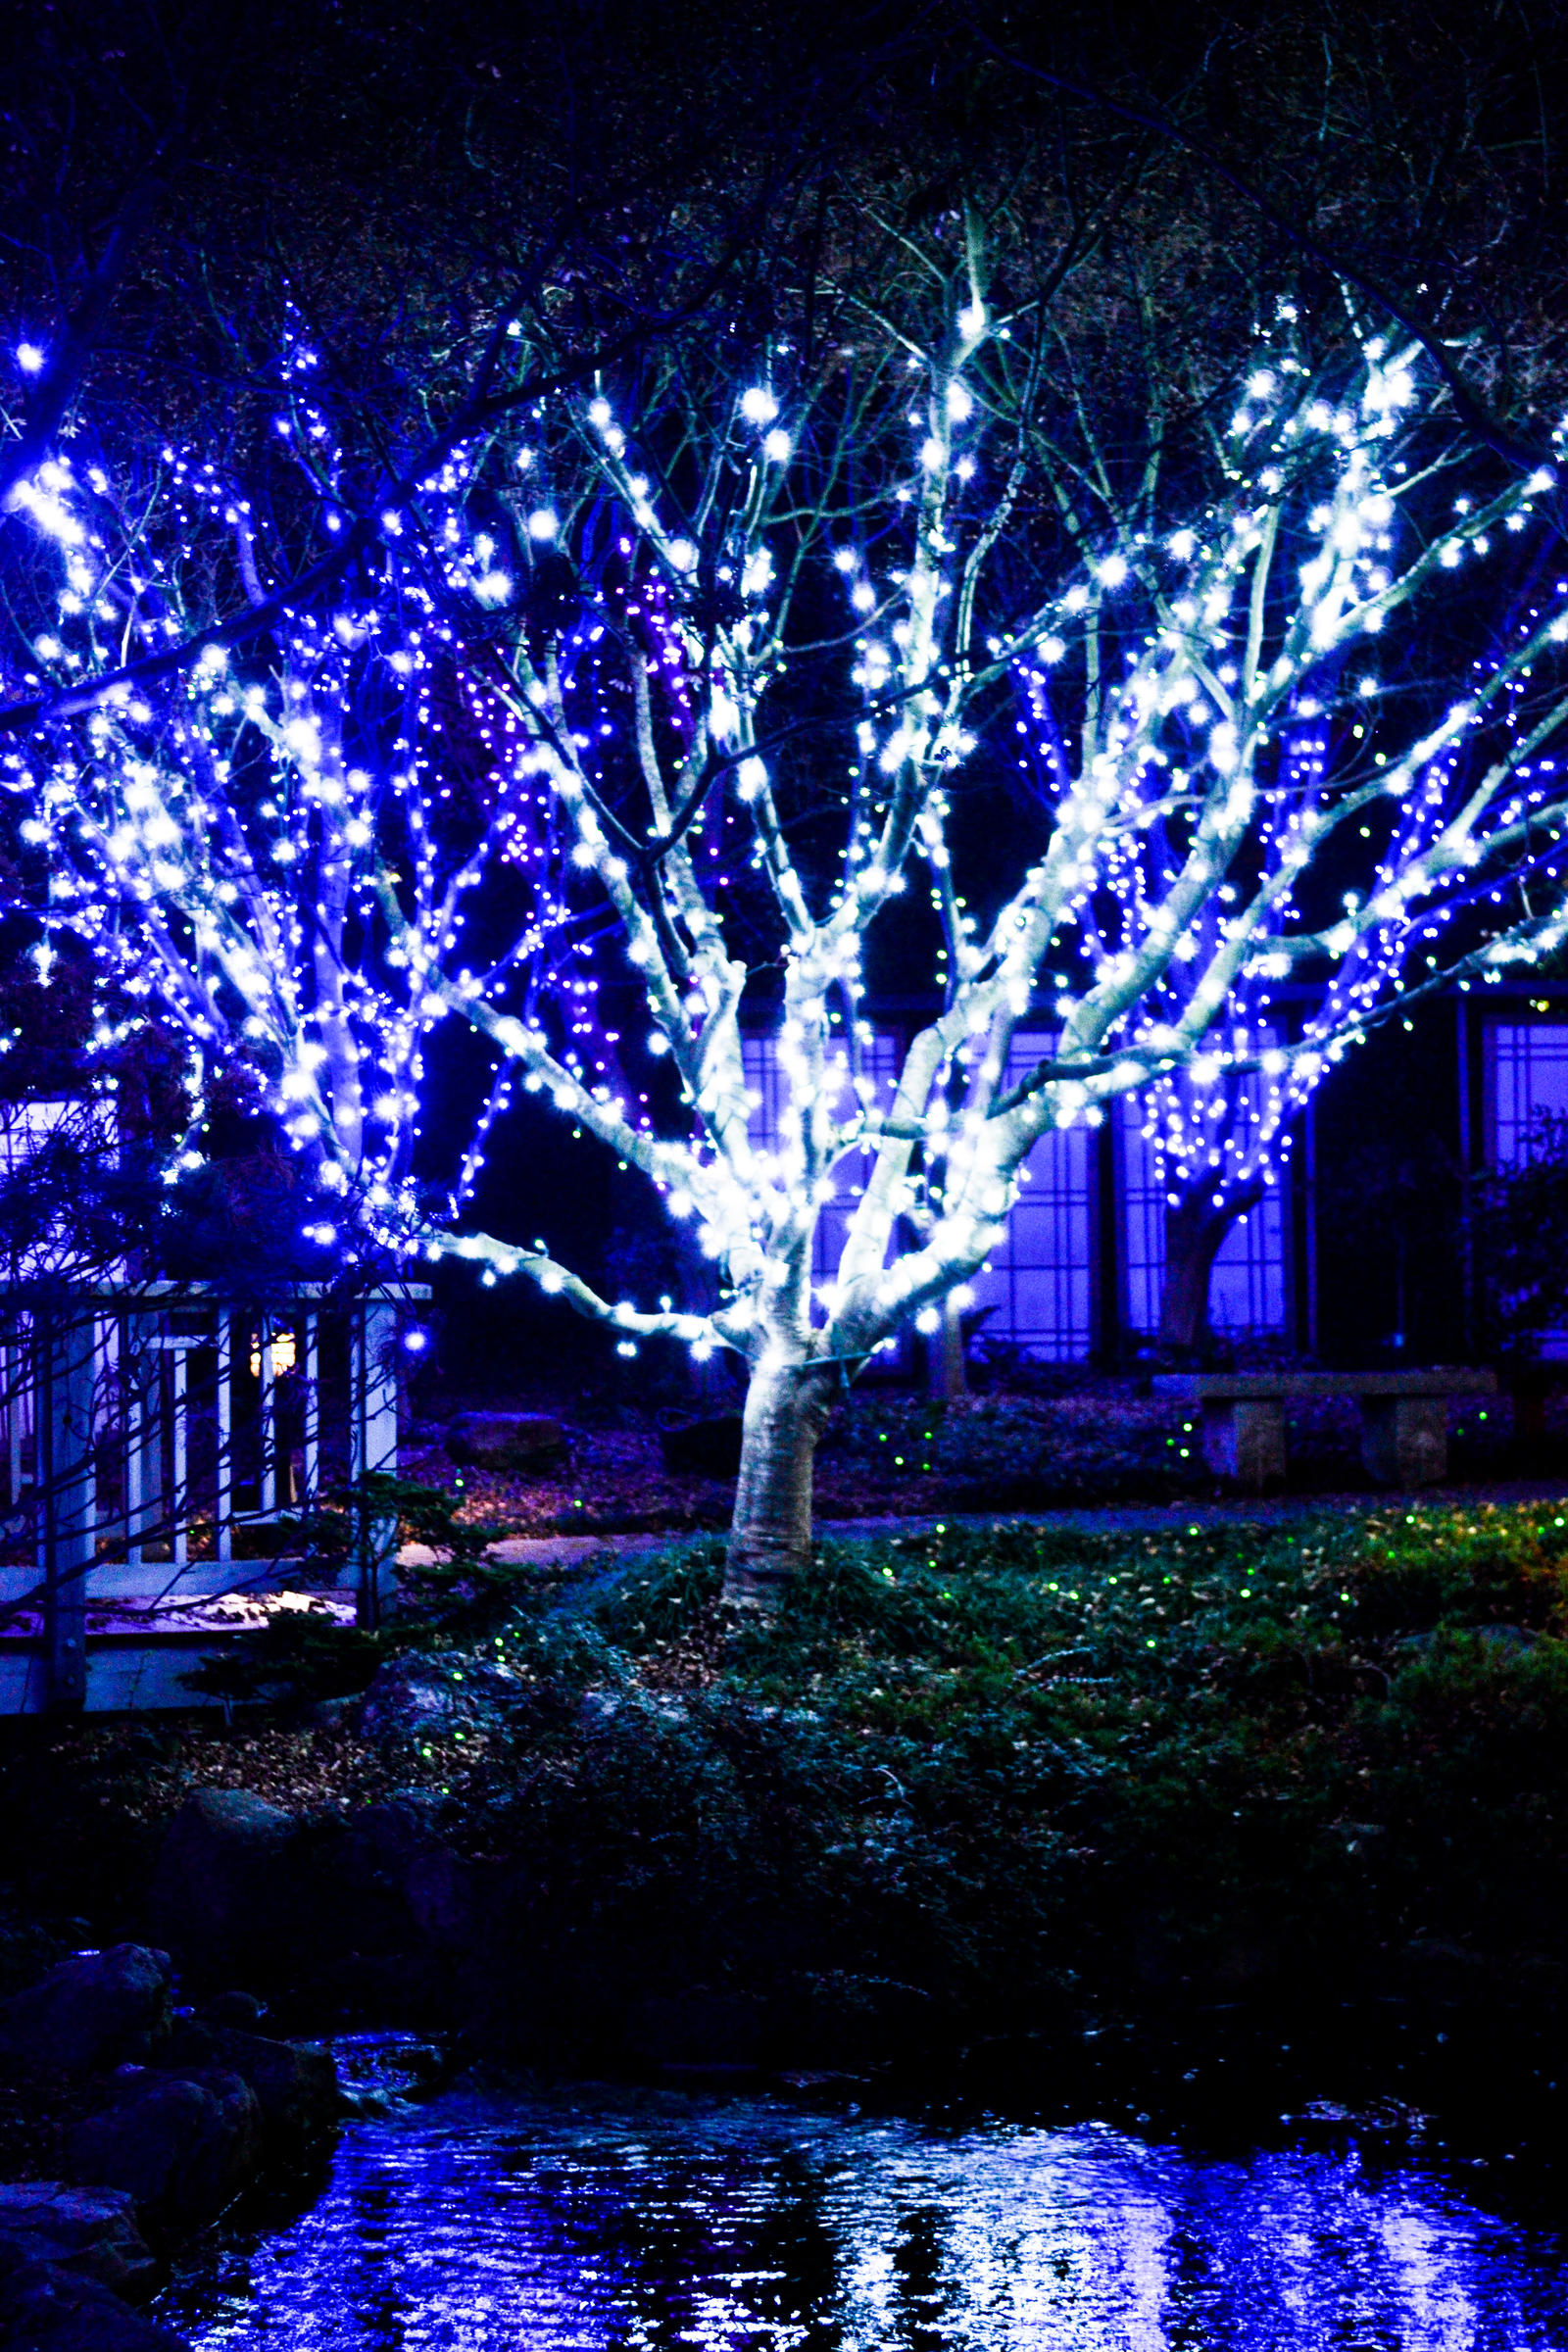 Lewis ginter botanical gardenchristmas lights 10 by yonaka photography on deviantart for Lewis ginter botanical gardens christmas